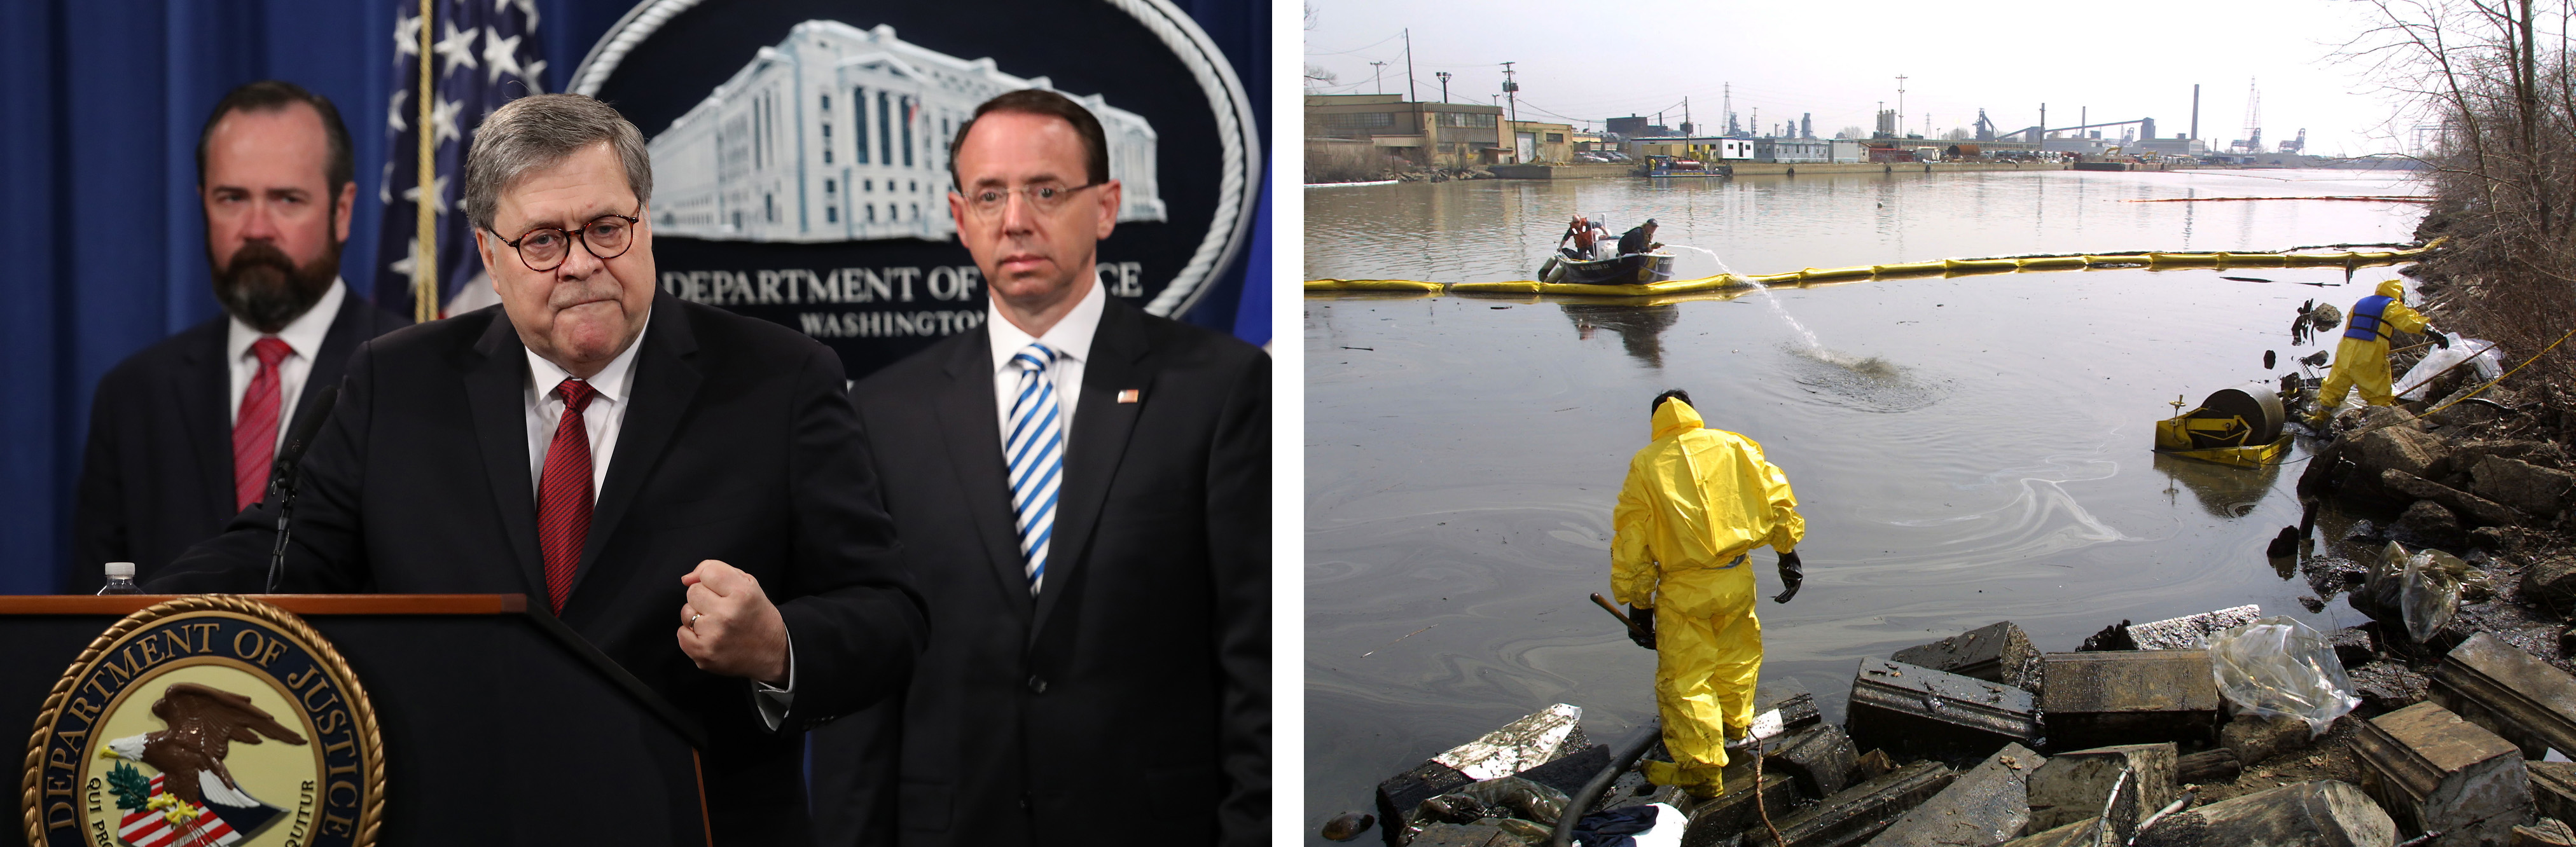 Left: U.S. Attorney General William Barr, speaking, heads the Department of Justice under President Trump. Right: Workers clean up part of a 10,000-gallon industrial-grade waste oil spill in the Rouge River in April 2002.